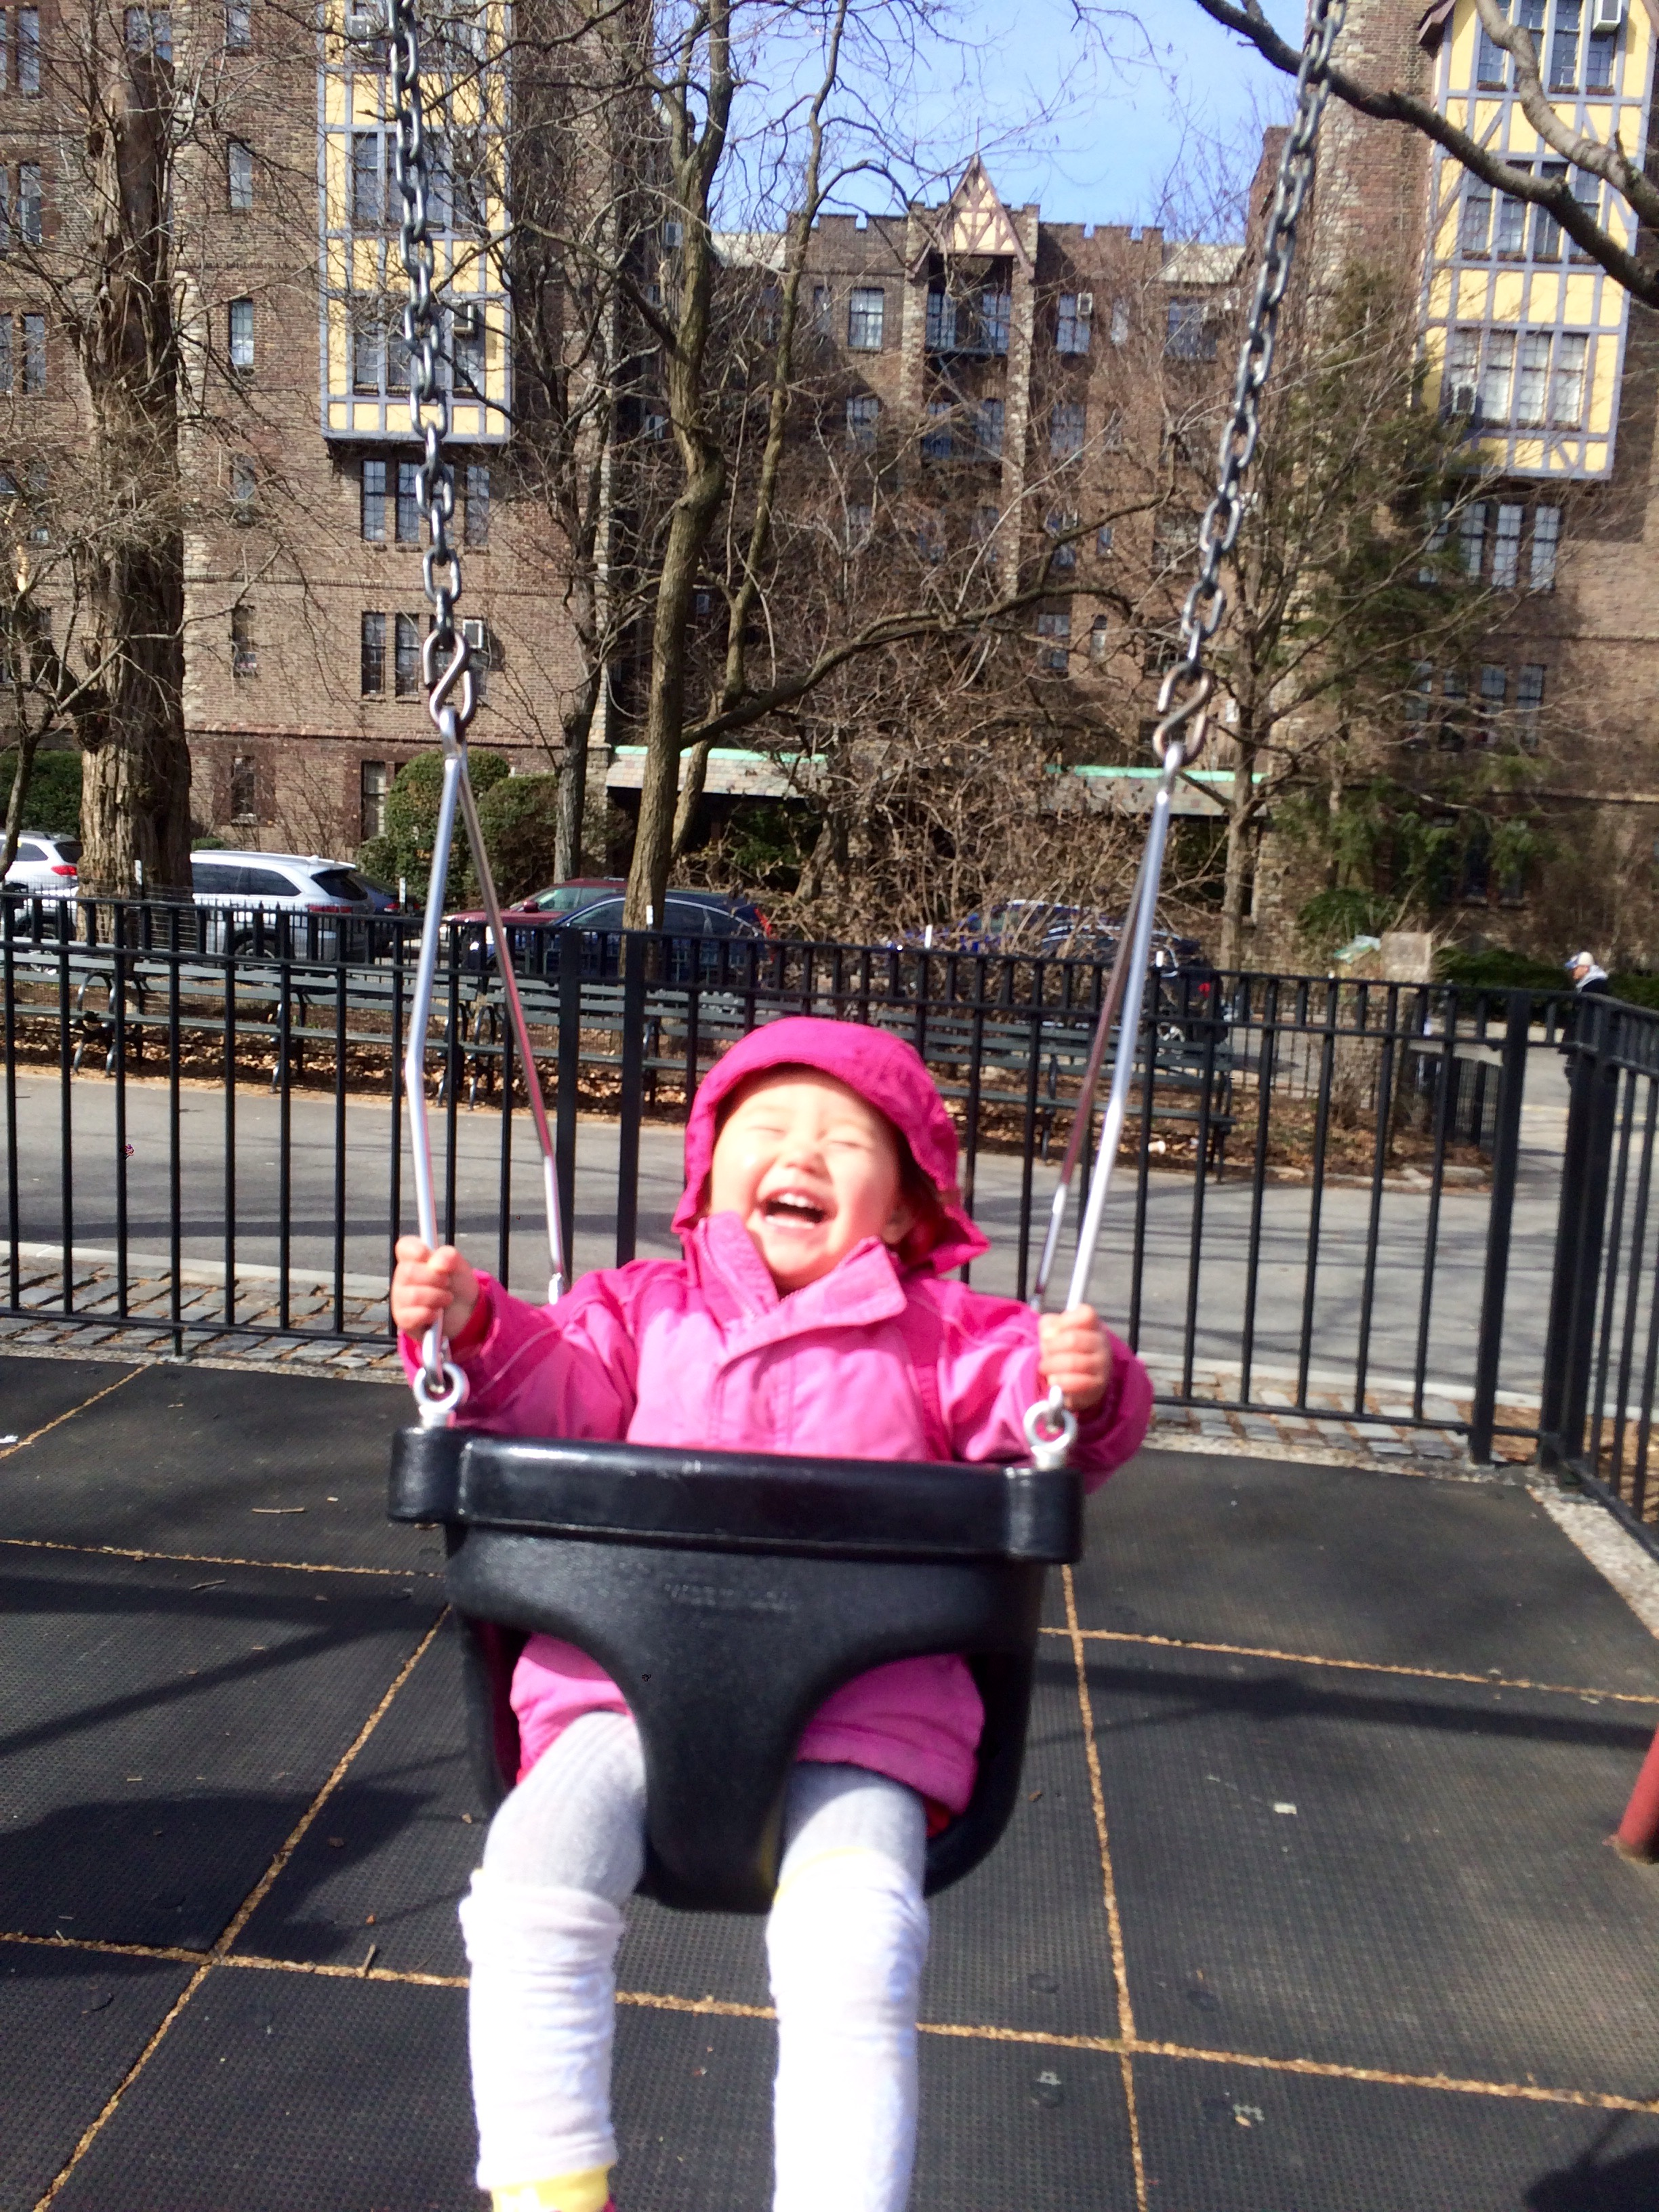 Luna, happily swinging at one of our neighborhood playgrounds.